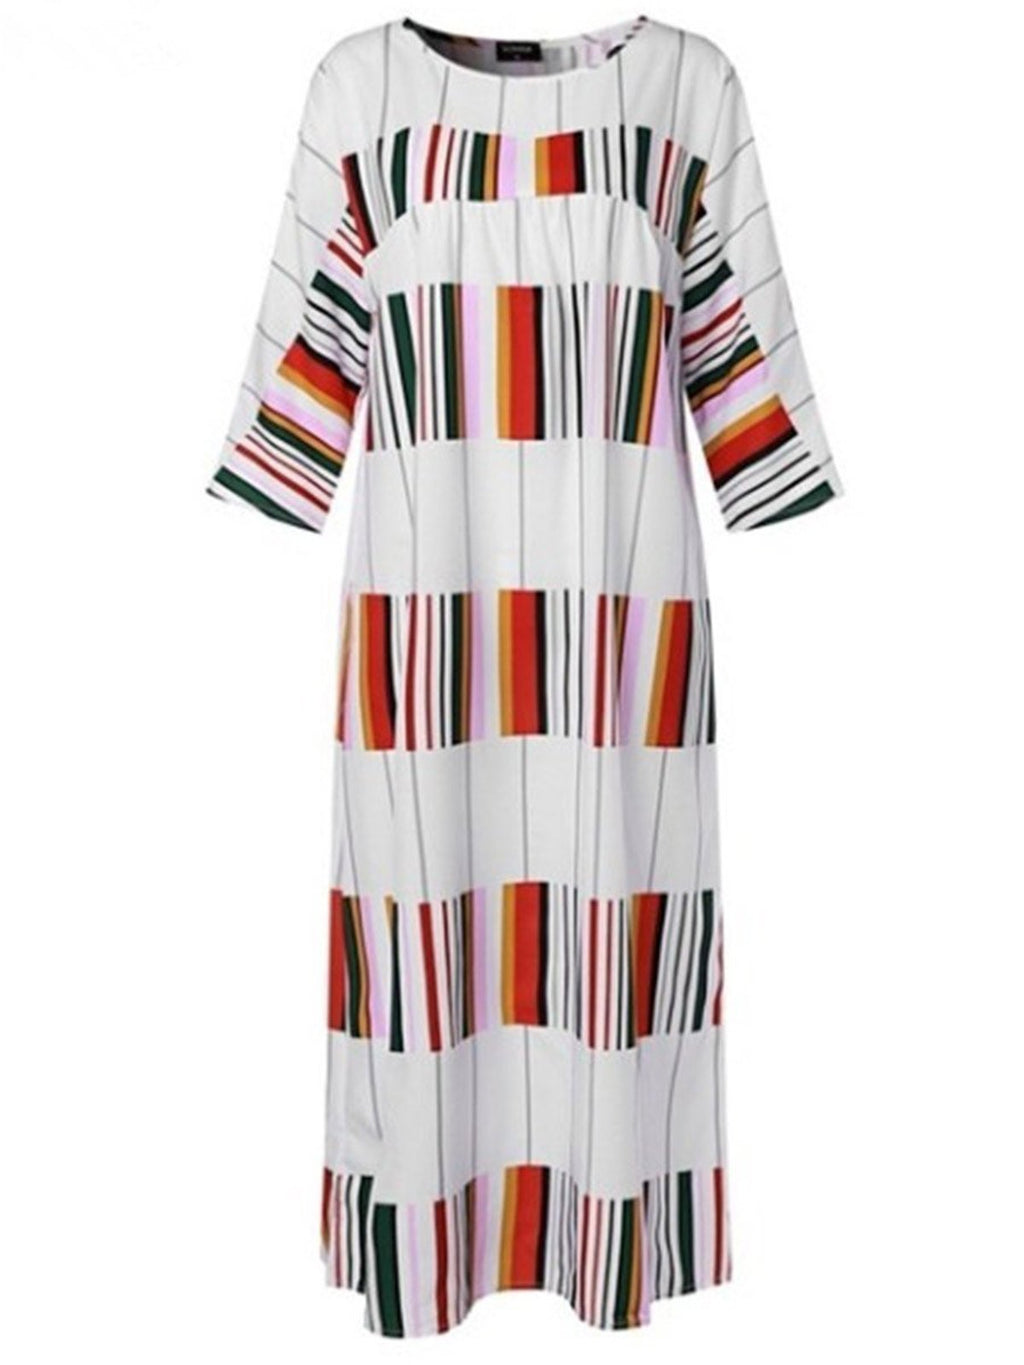 Wide Colorful Striped Print Maxi 3/4 Sleeve Dress